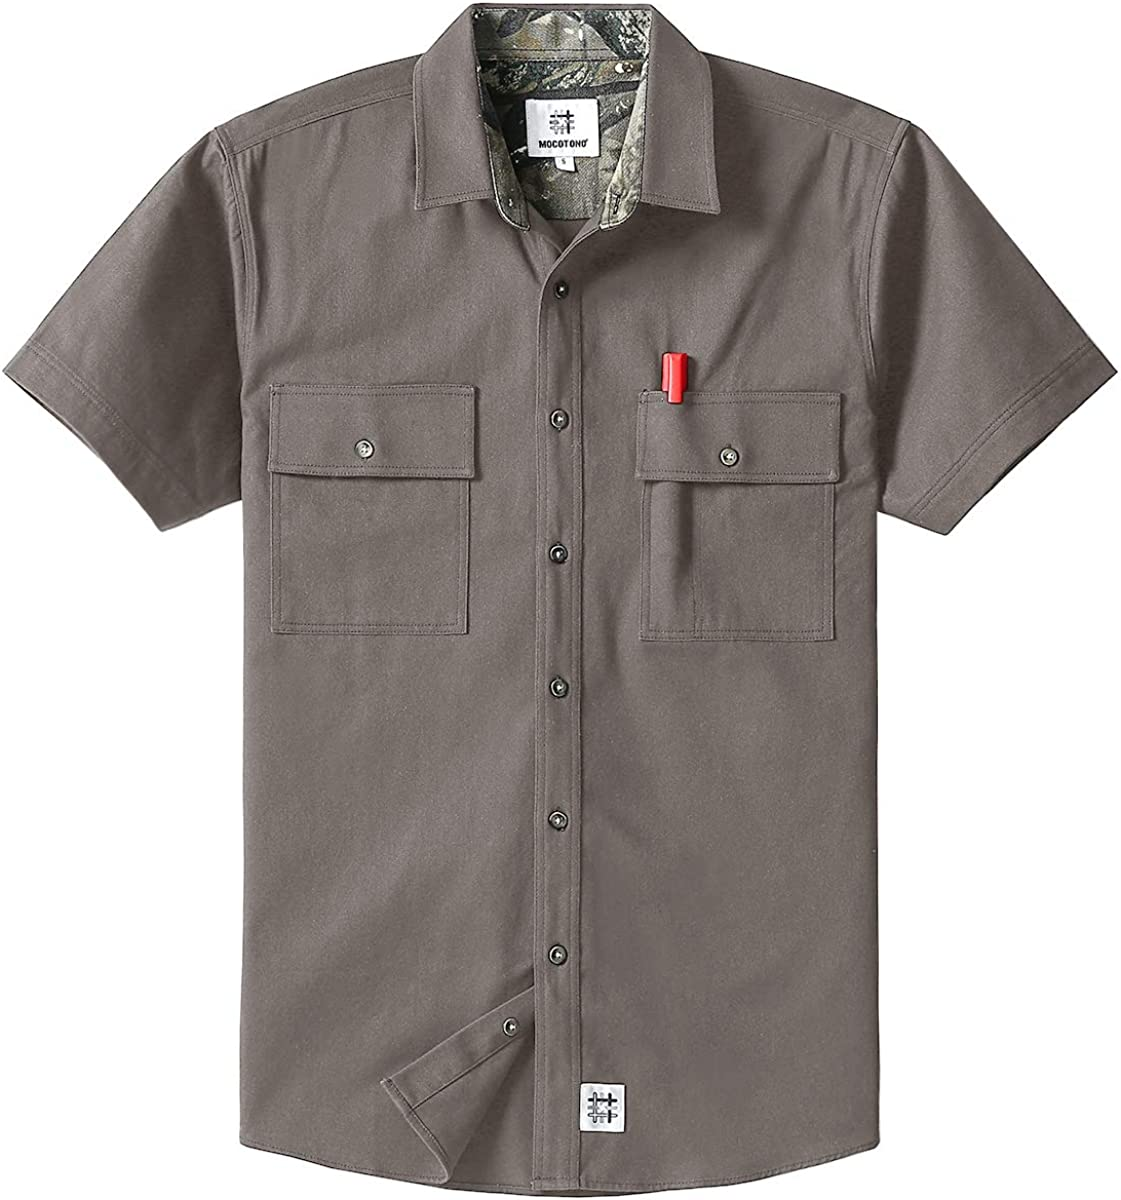 1960s – 70s Mens Shirts- Disco Shirts, Hippie Shirts Mens Short Sleeve Canvas Button-Up Work Shirt $24.99 AT vintagedancer.com